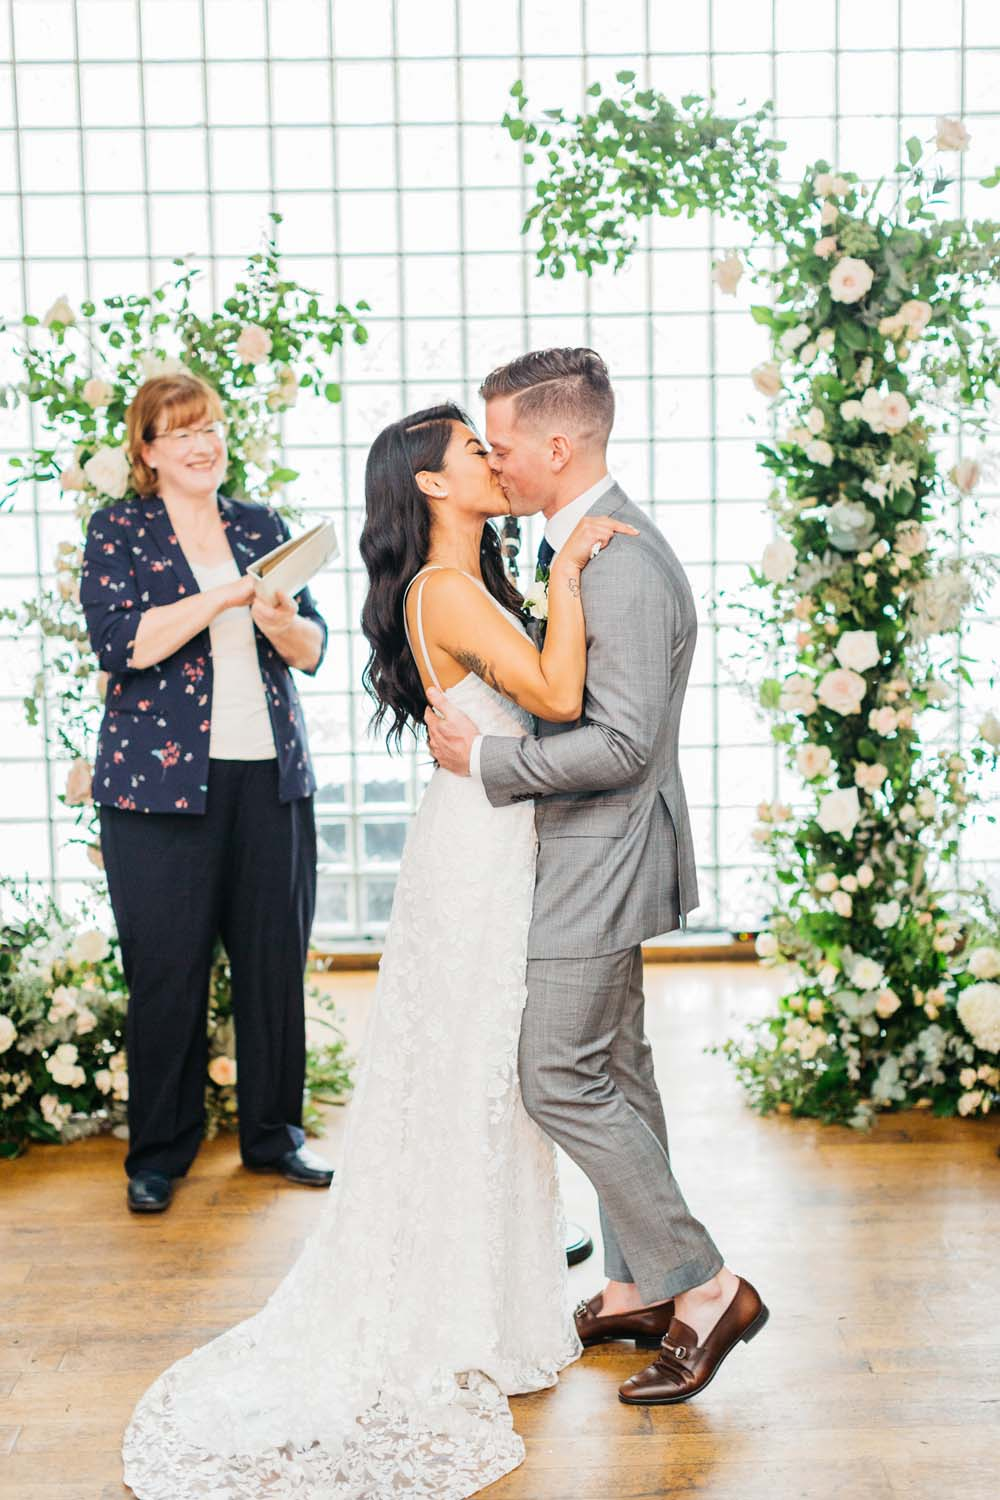 A Bright and Airy September Wedding in Toronto, Ontario - First Kiss